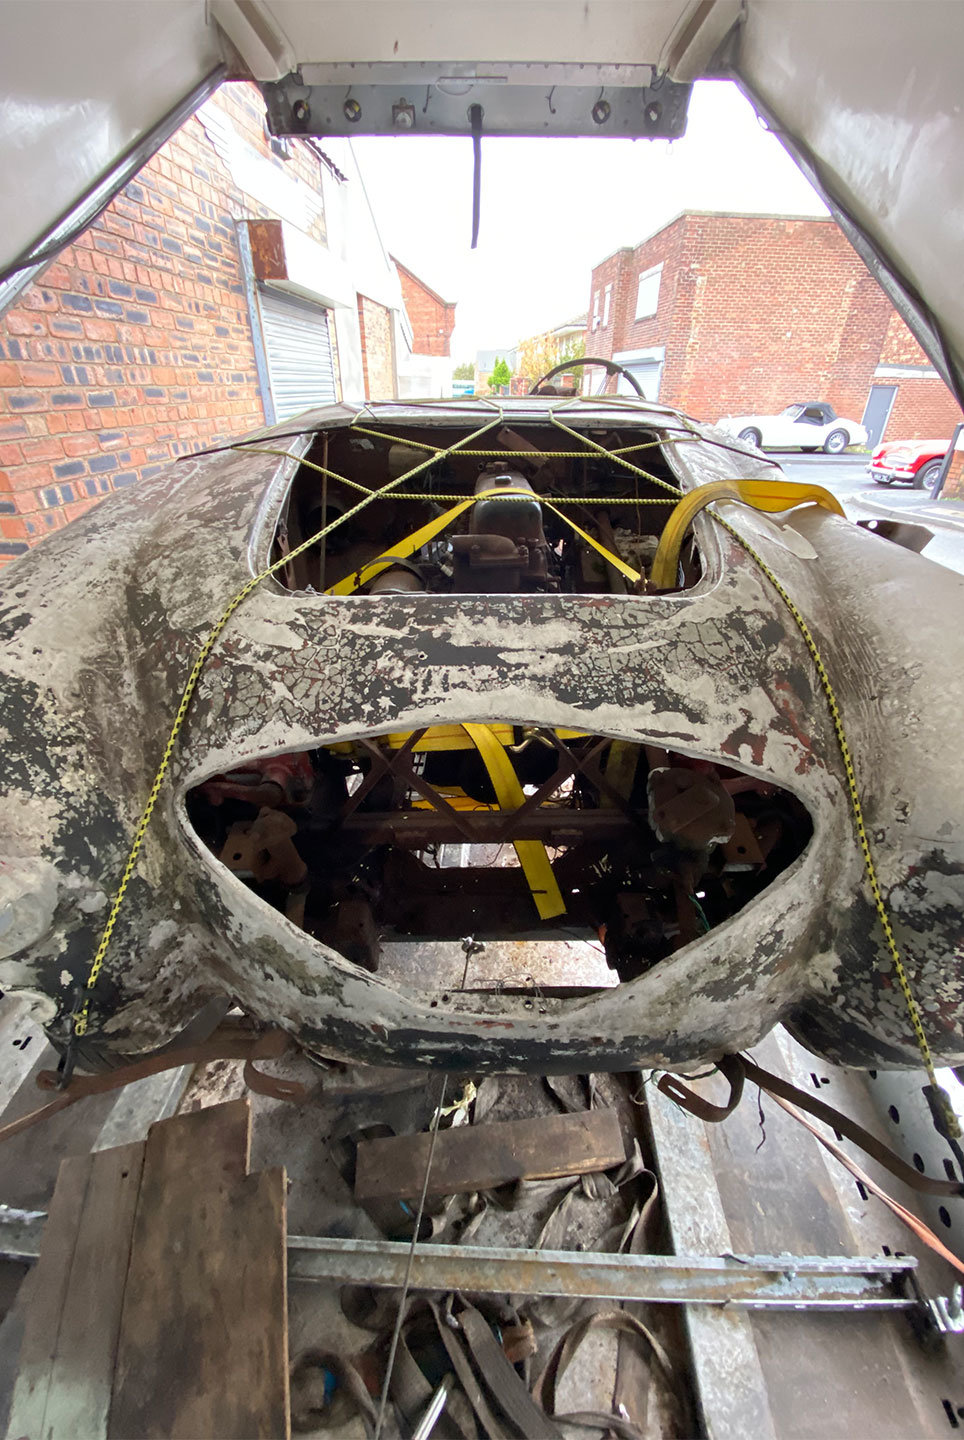 1955 Austin Healey 100/4 Restoration Project For Sale (picture 1 of 9)